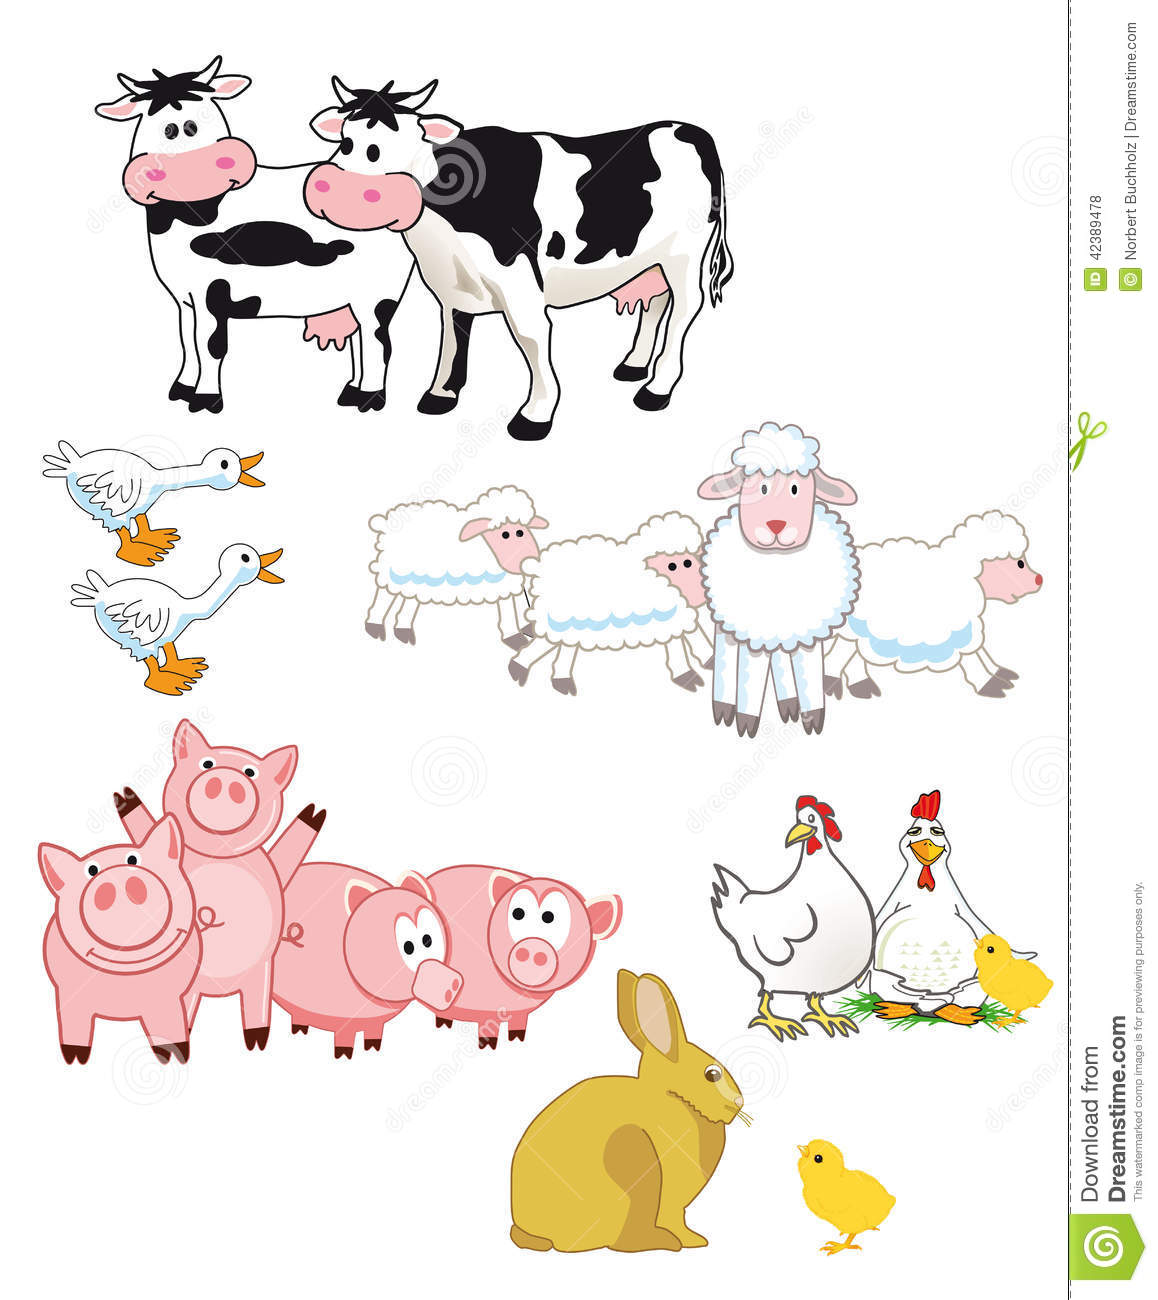 ... illustrations of cows, sheep, ducks, pigs, chickens and a rabbit